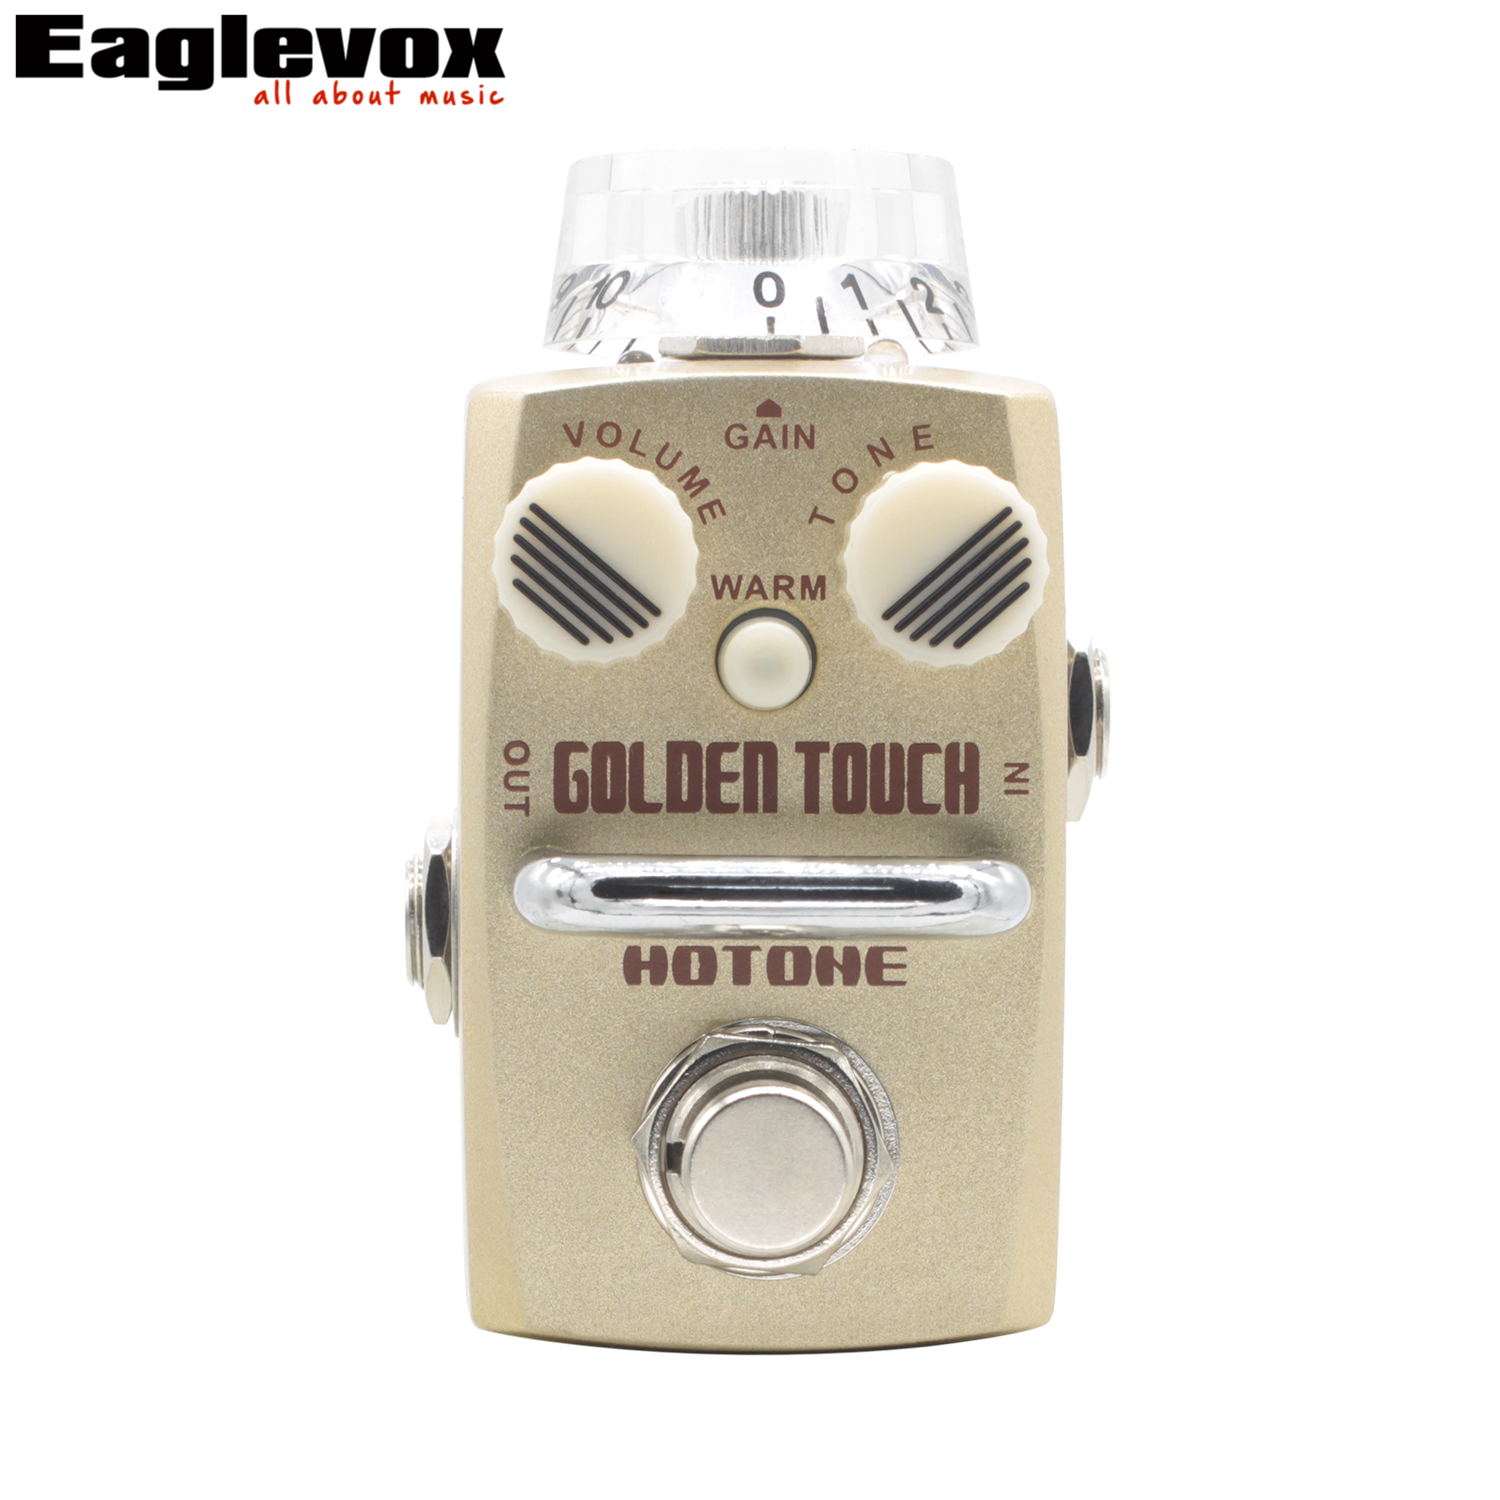 Hotone Golden Touch Overdrive Guitar Effect Pedal Warm  Natural Sweet Sound  True Bypass Effects for Electric Guitar mooer ensemble queen bass chorus effect pedal mini guitar effects true bypass with free connector and footswitch topper